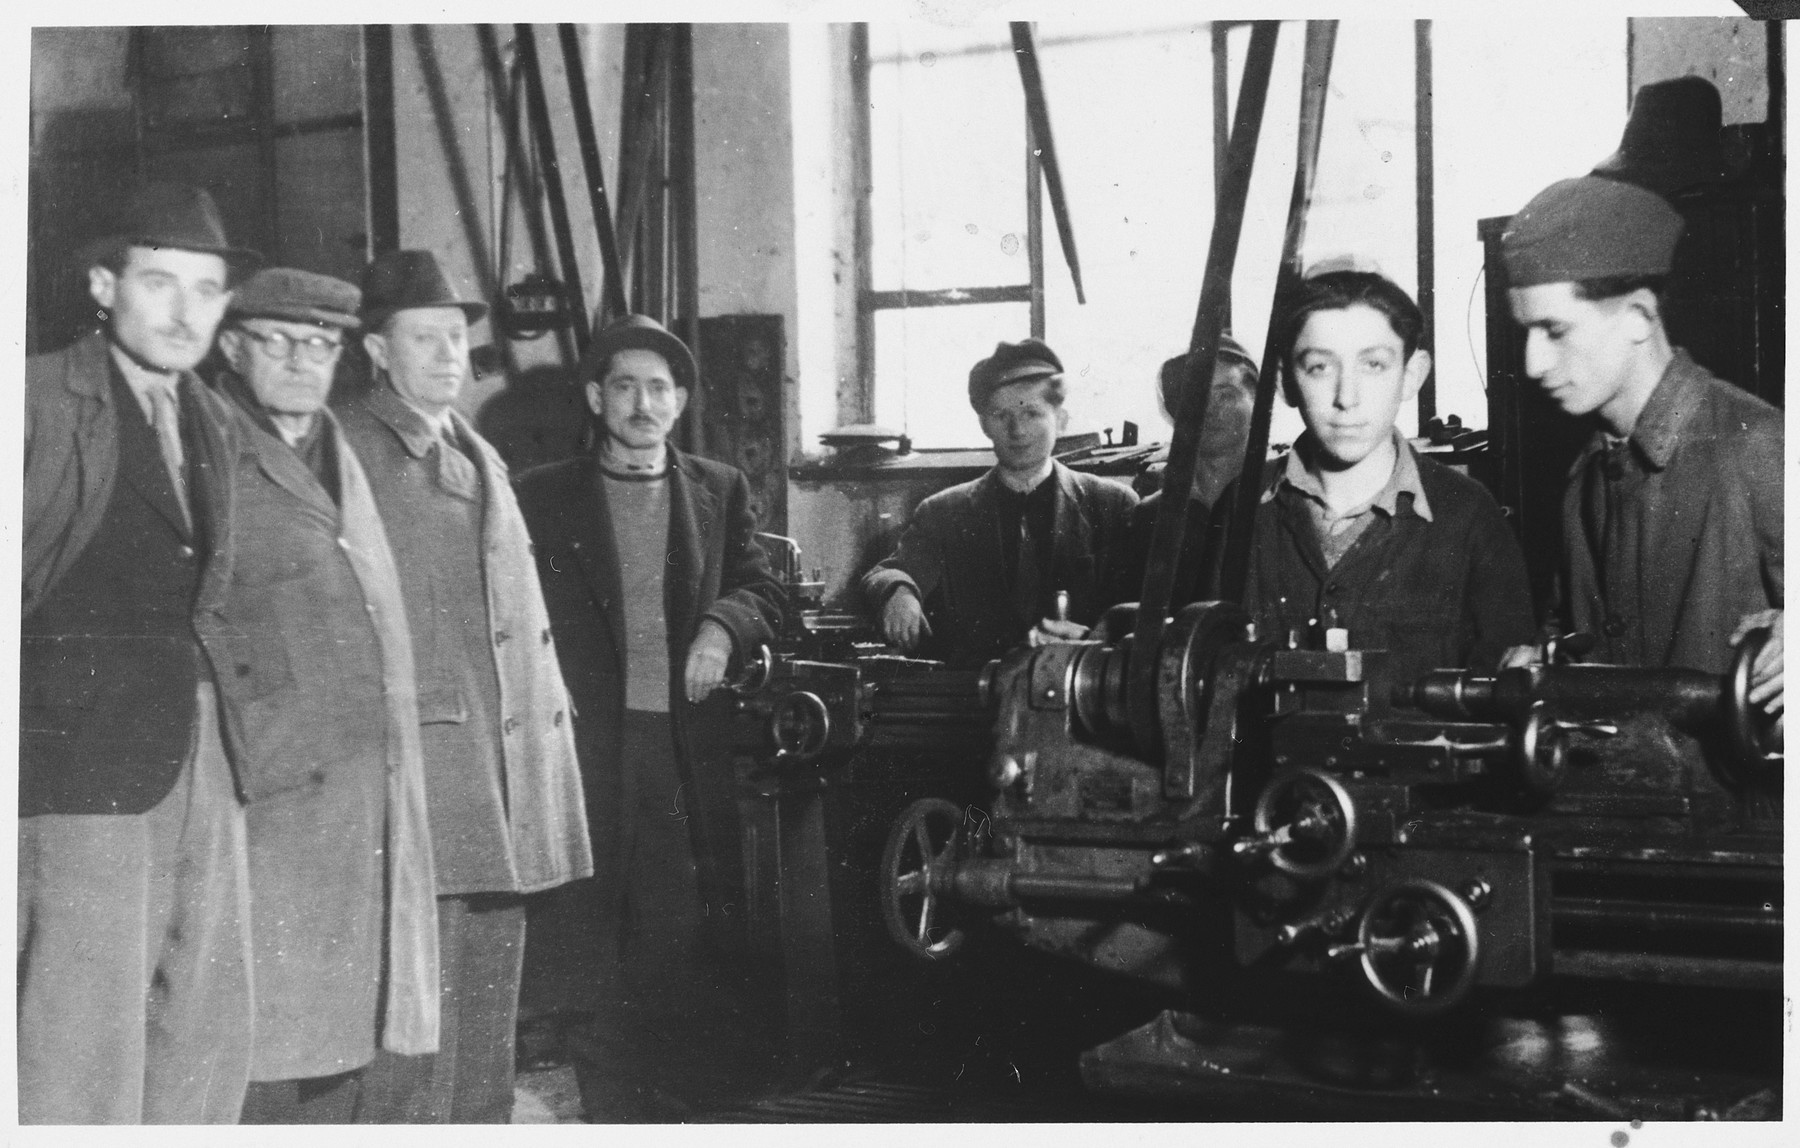 Jewish DP youth learn to operate machine tools in a hachshara (Zionist collective) in Kosice.  Izidor Neugreschel is third from the left.  Erwin Buncel is fifth from the left in the center.   Staring directly at the camera is Frank Lowy (then Feri Lowy).